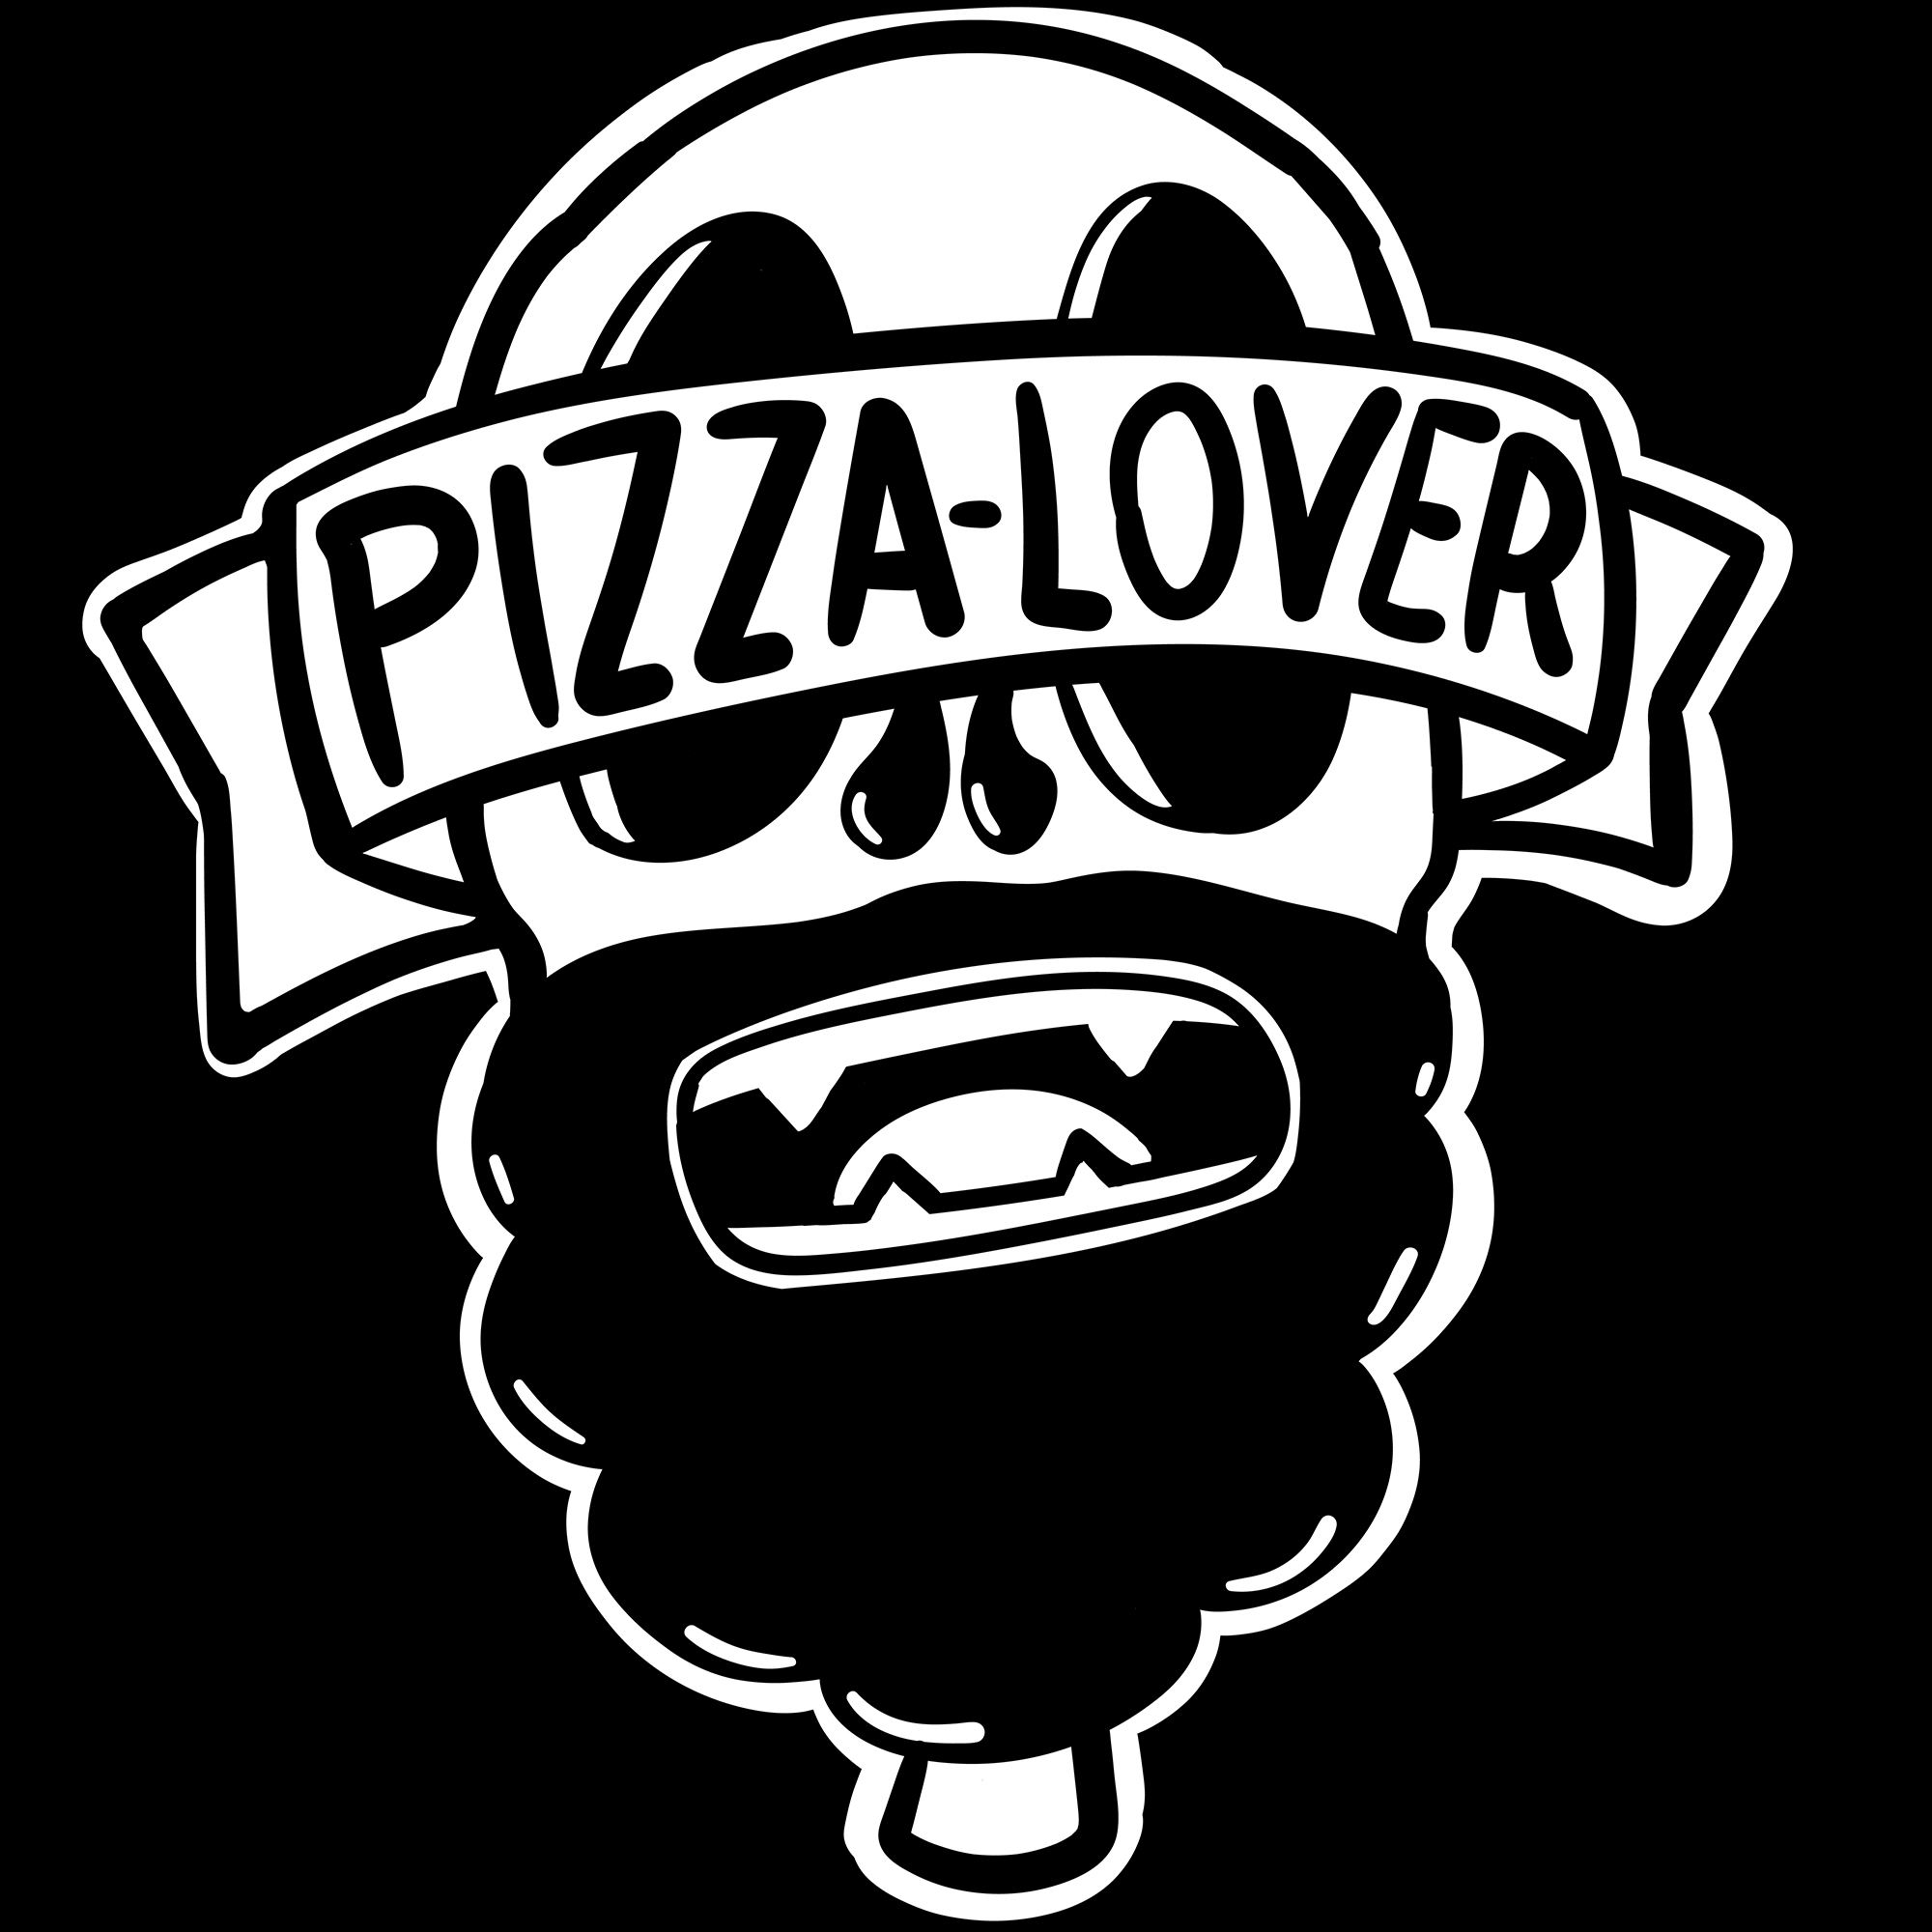 pizza lover, black and white illustration